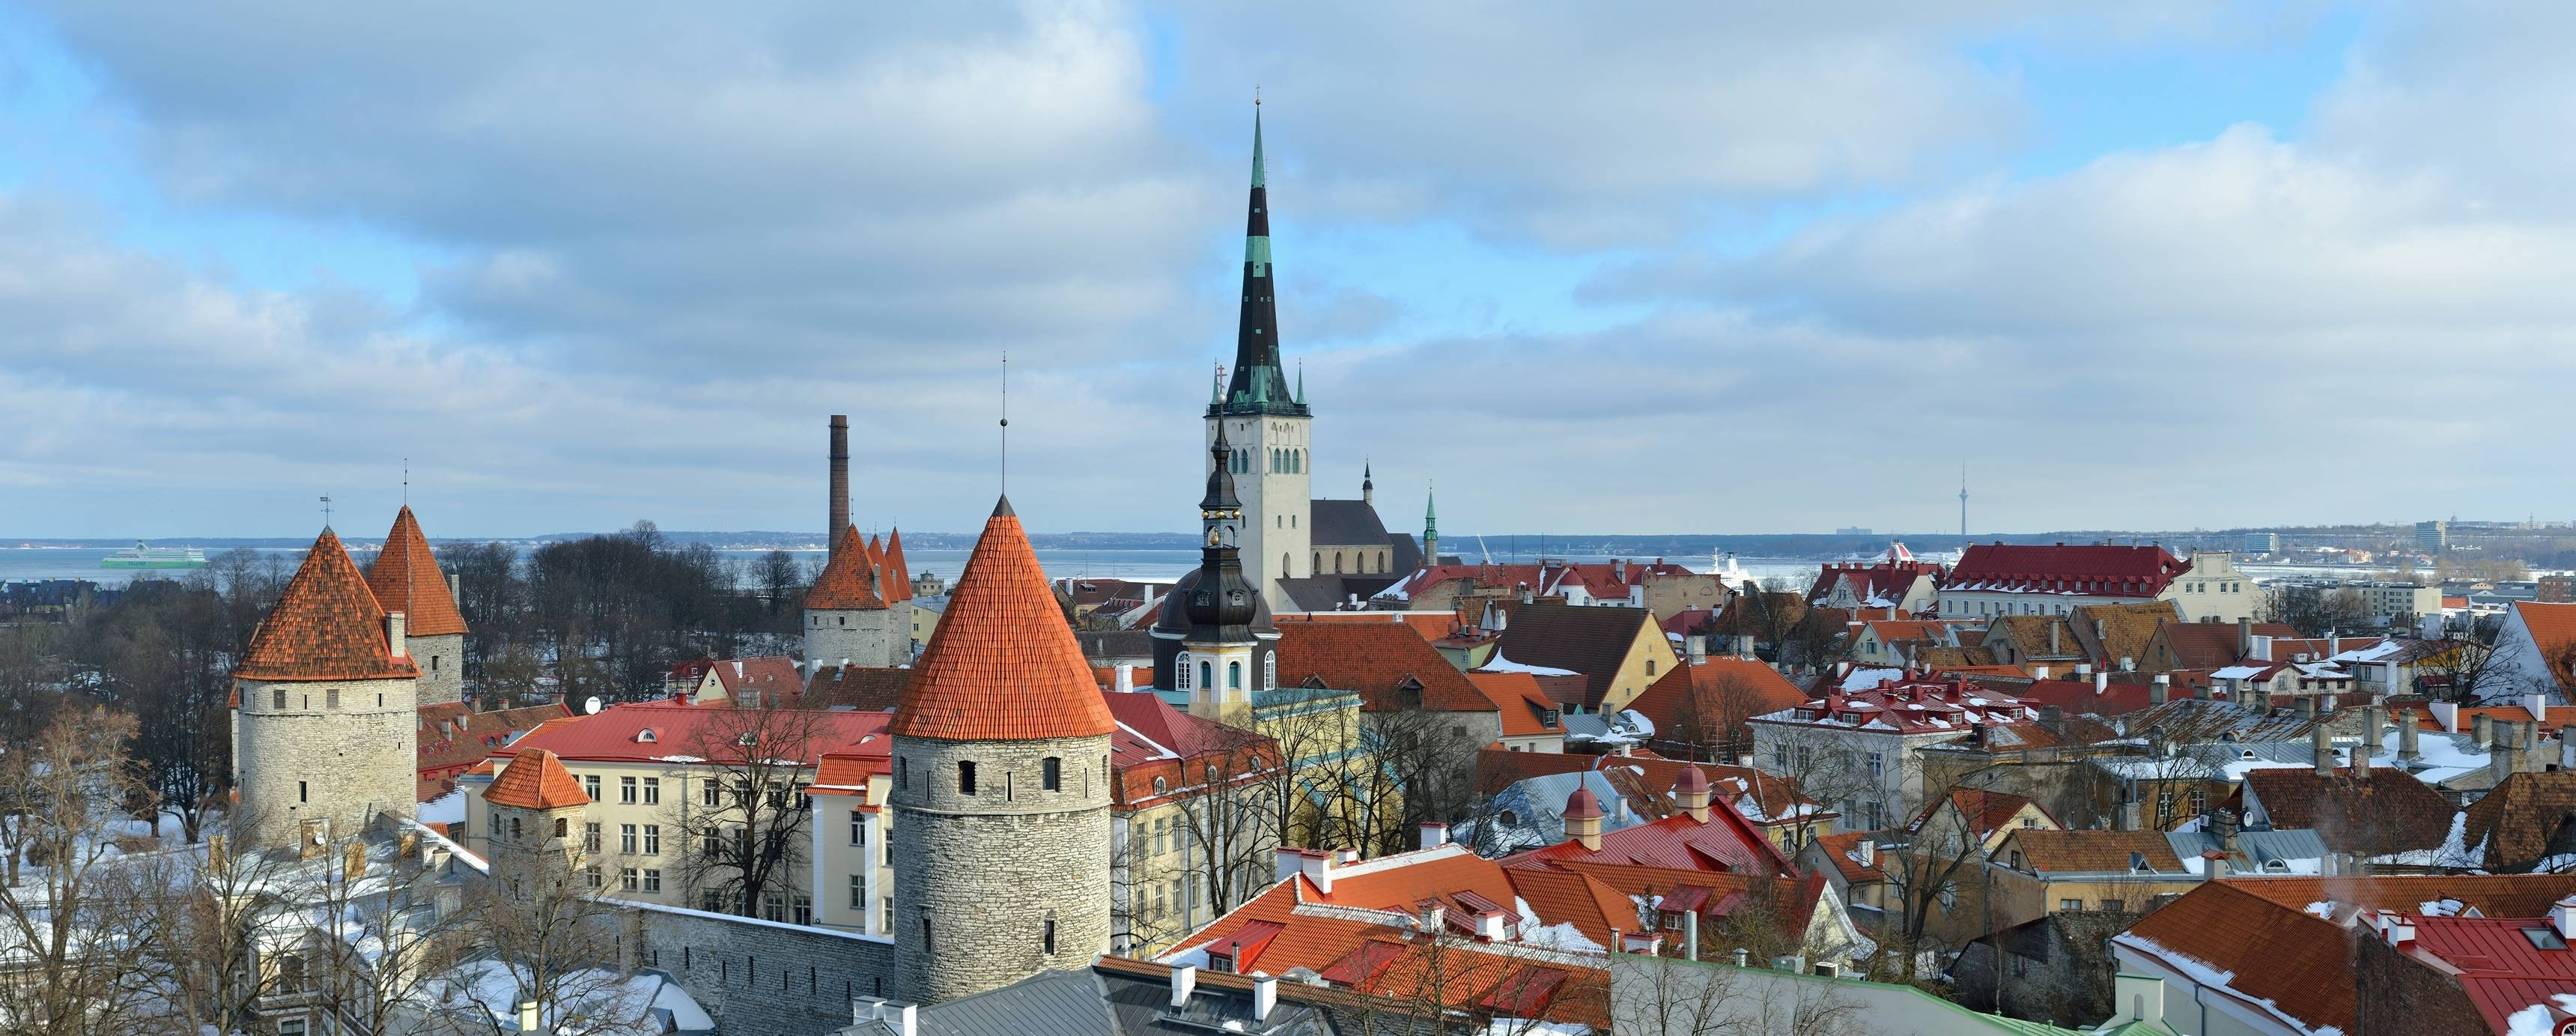 General 3440x1383 city old building Tallin Estonia winter cityscape